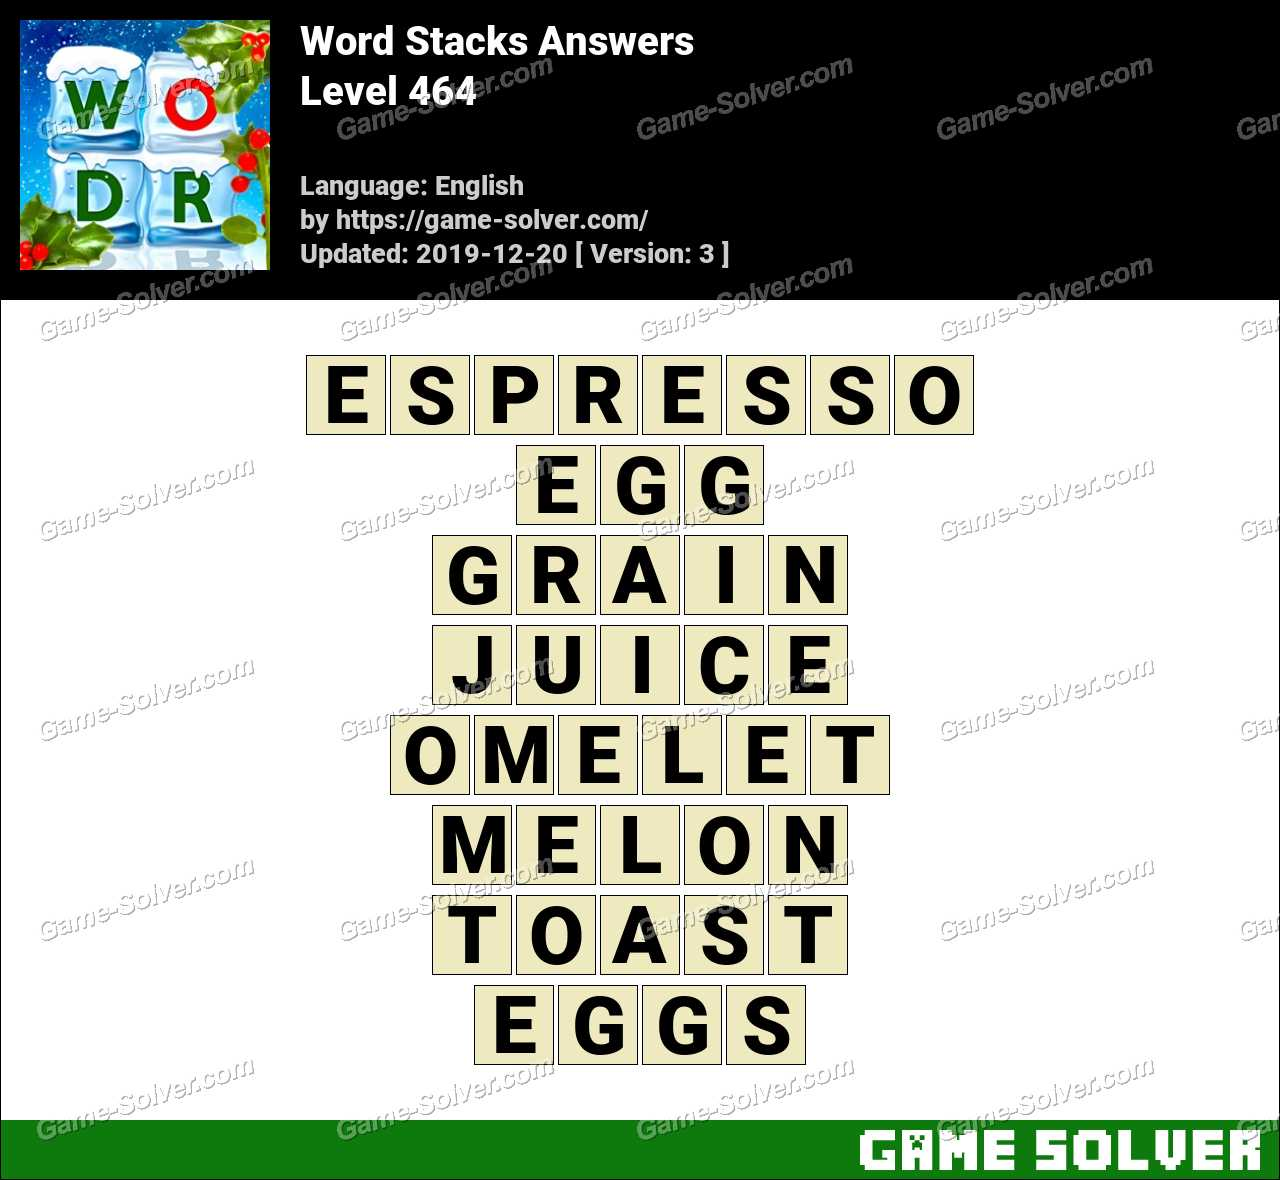 Word Stacks Level 464 Answers